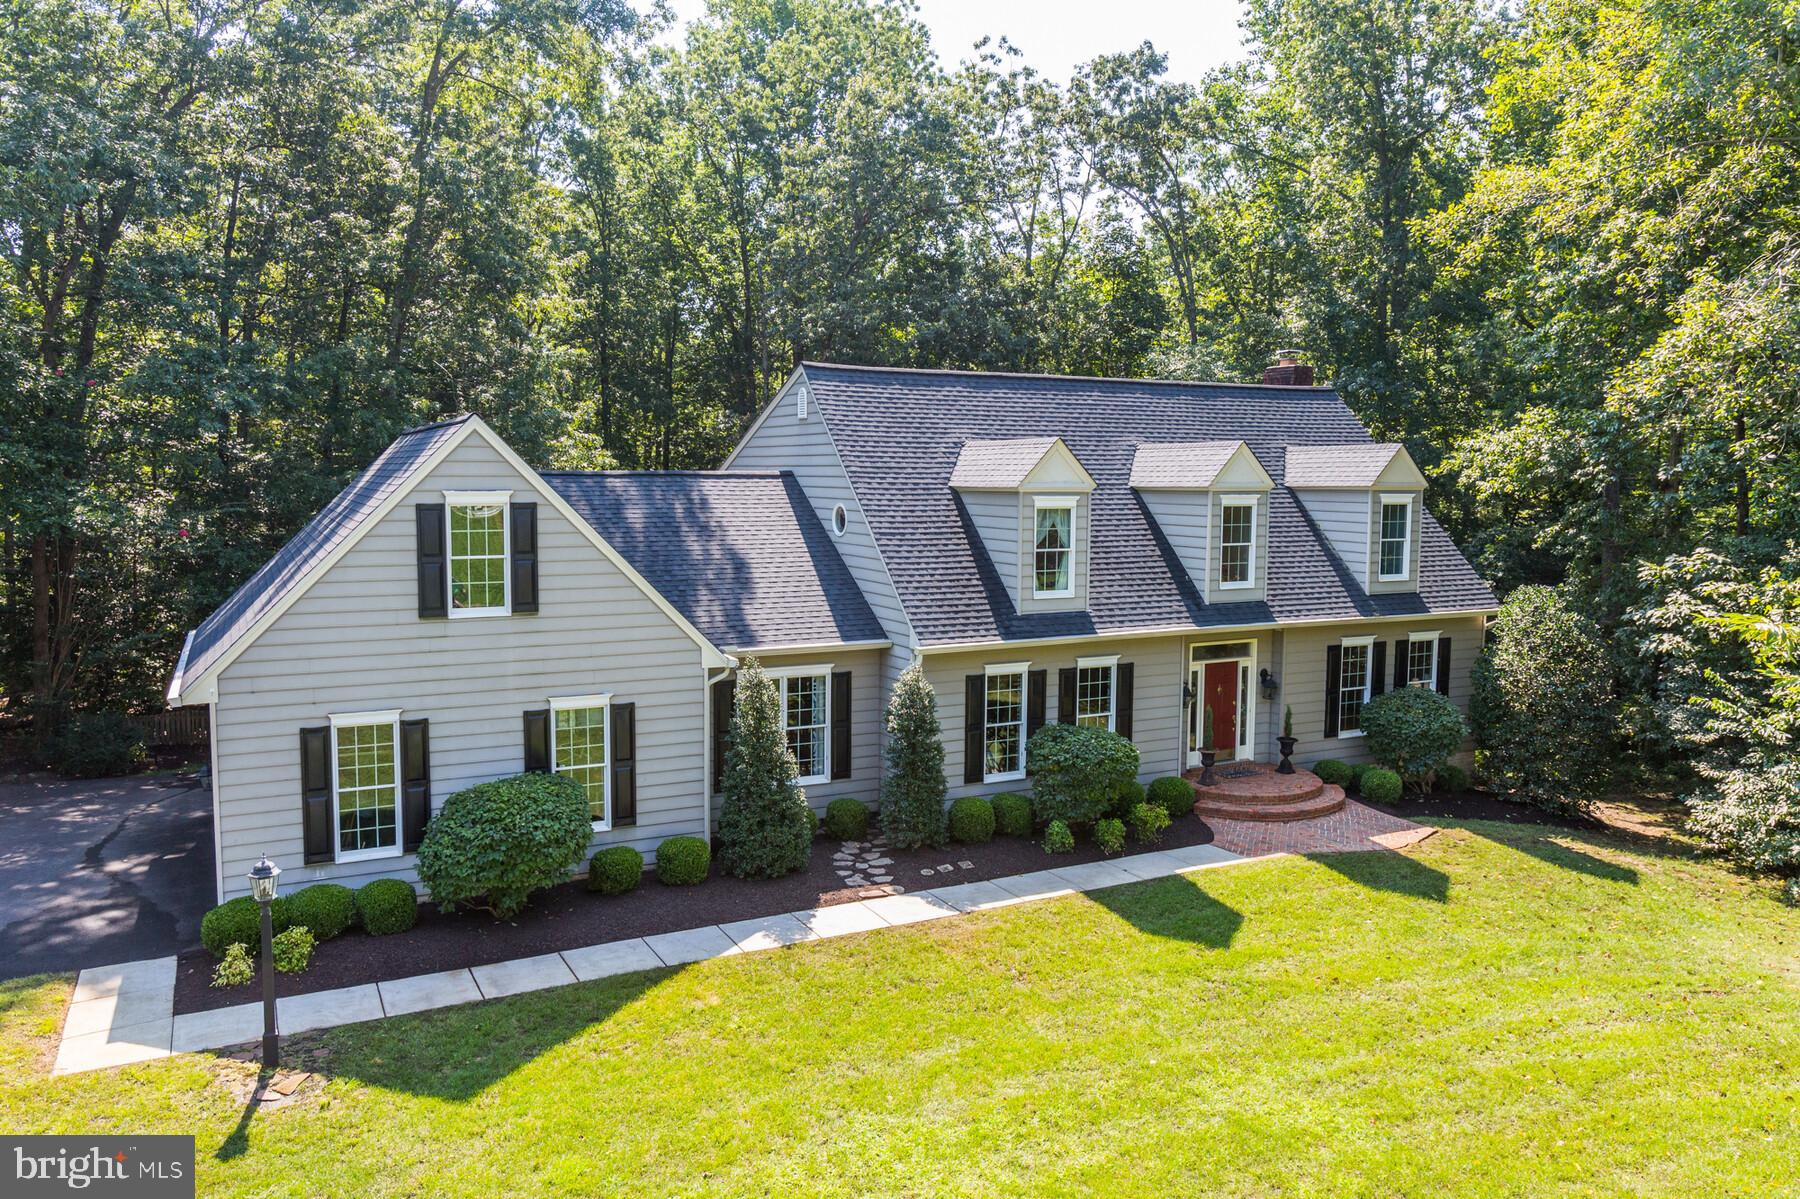 CASUAL ELEGANCE BEST DESCRIBES THIS BEAUTIFUL HOME IN THE SOUGHT AFTER COMMUNITY OF EAGLES PASSAGES.